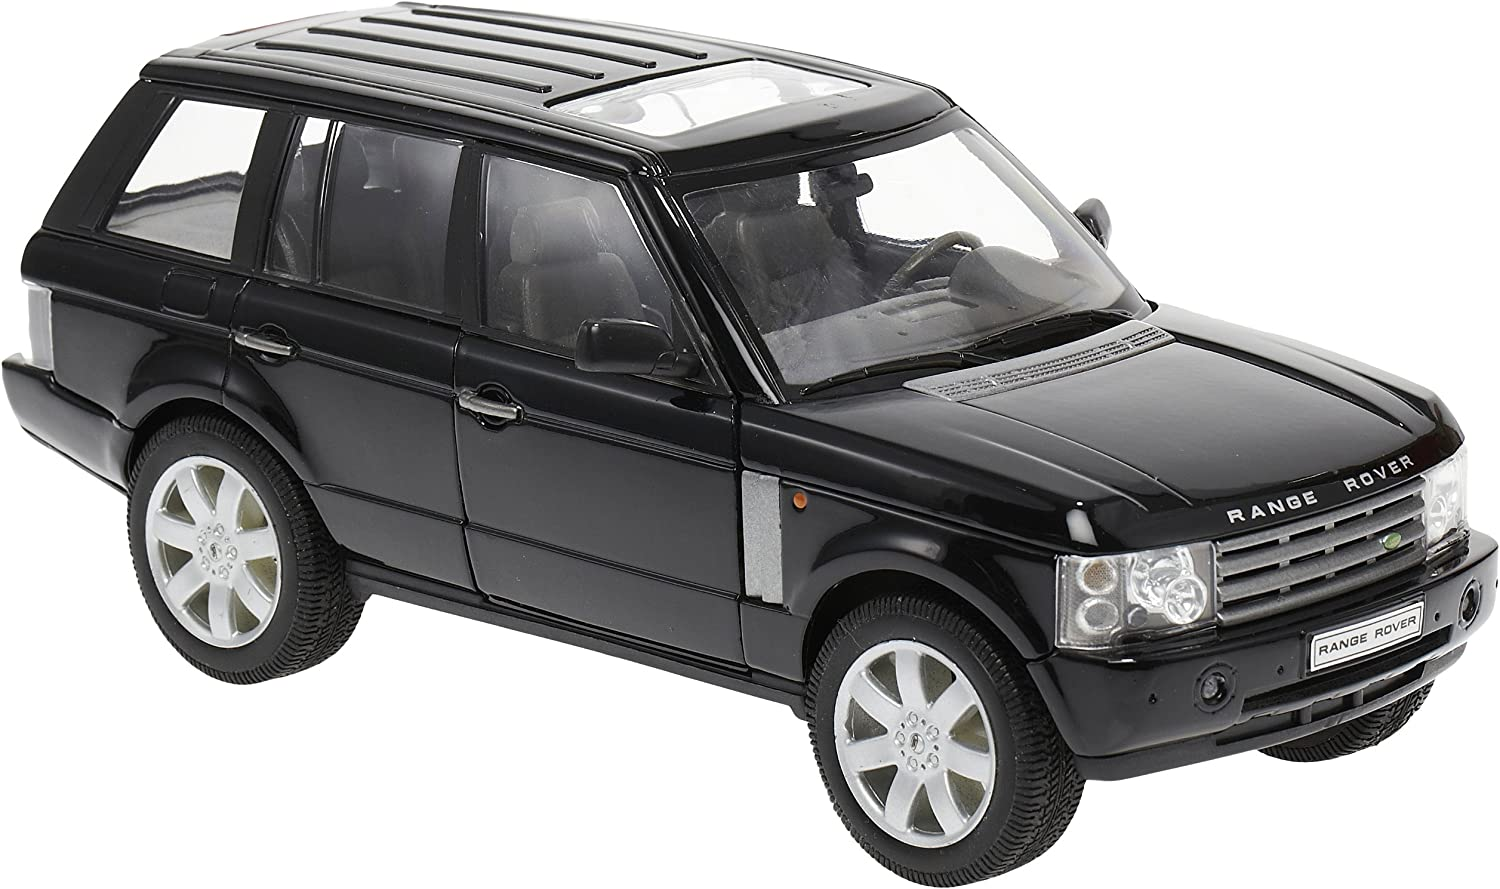 2003 Land Rover Range Rover Black 1/24 by Welly 22415